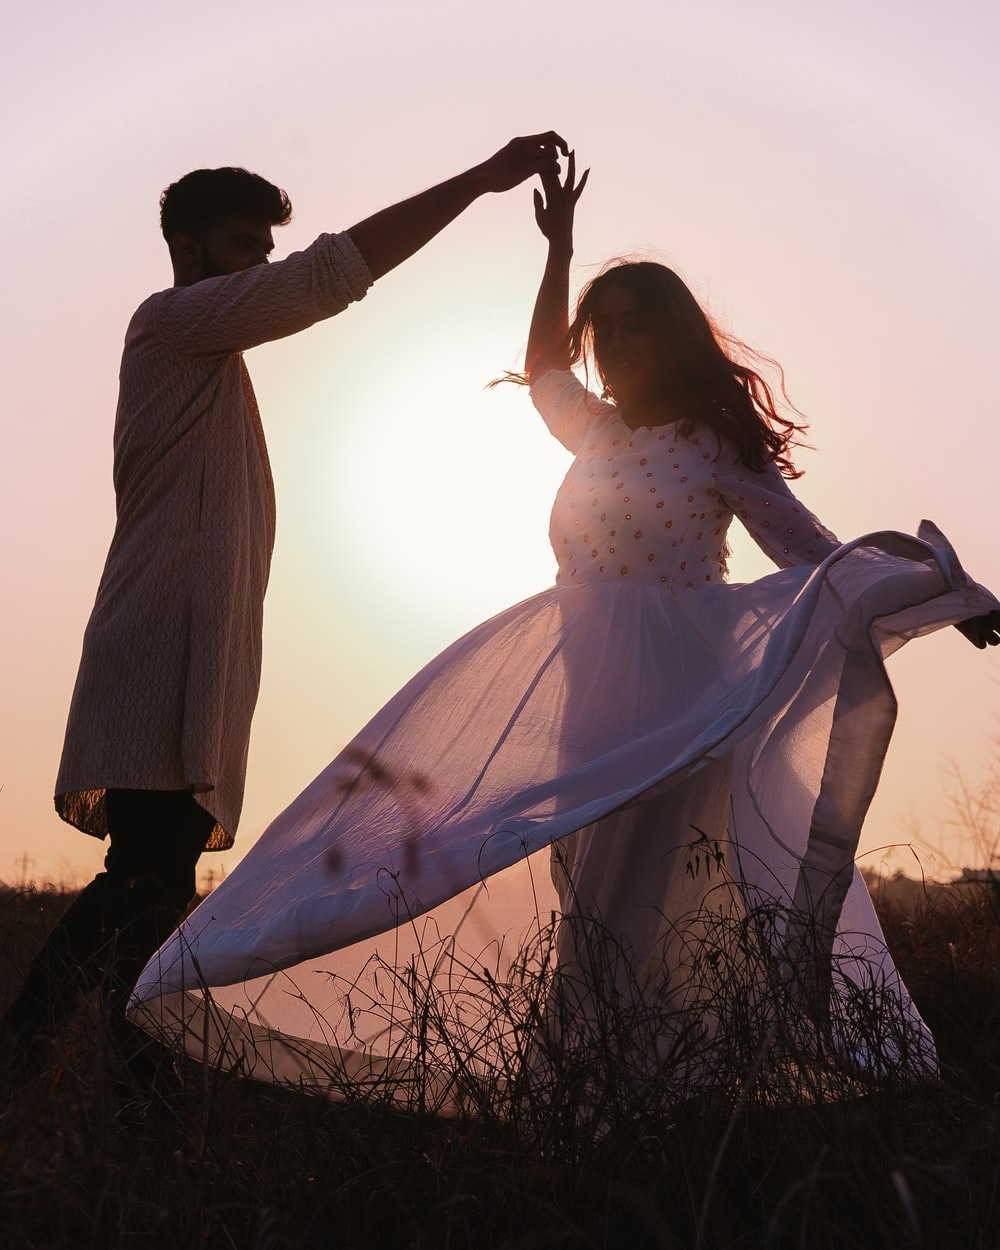 Evening Romance Pictures Download Free Images On Unsplash